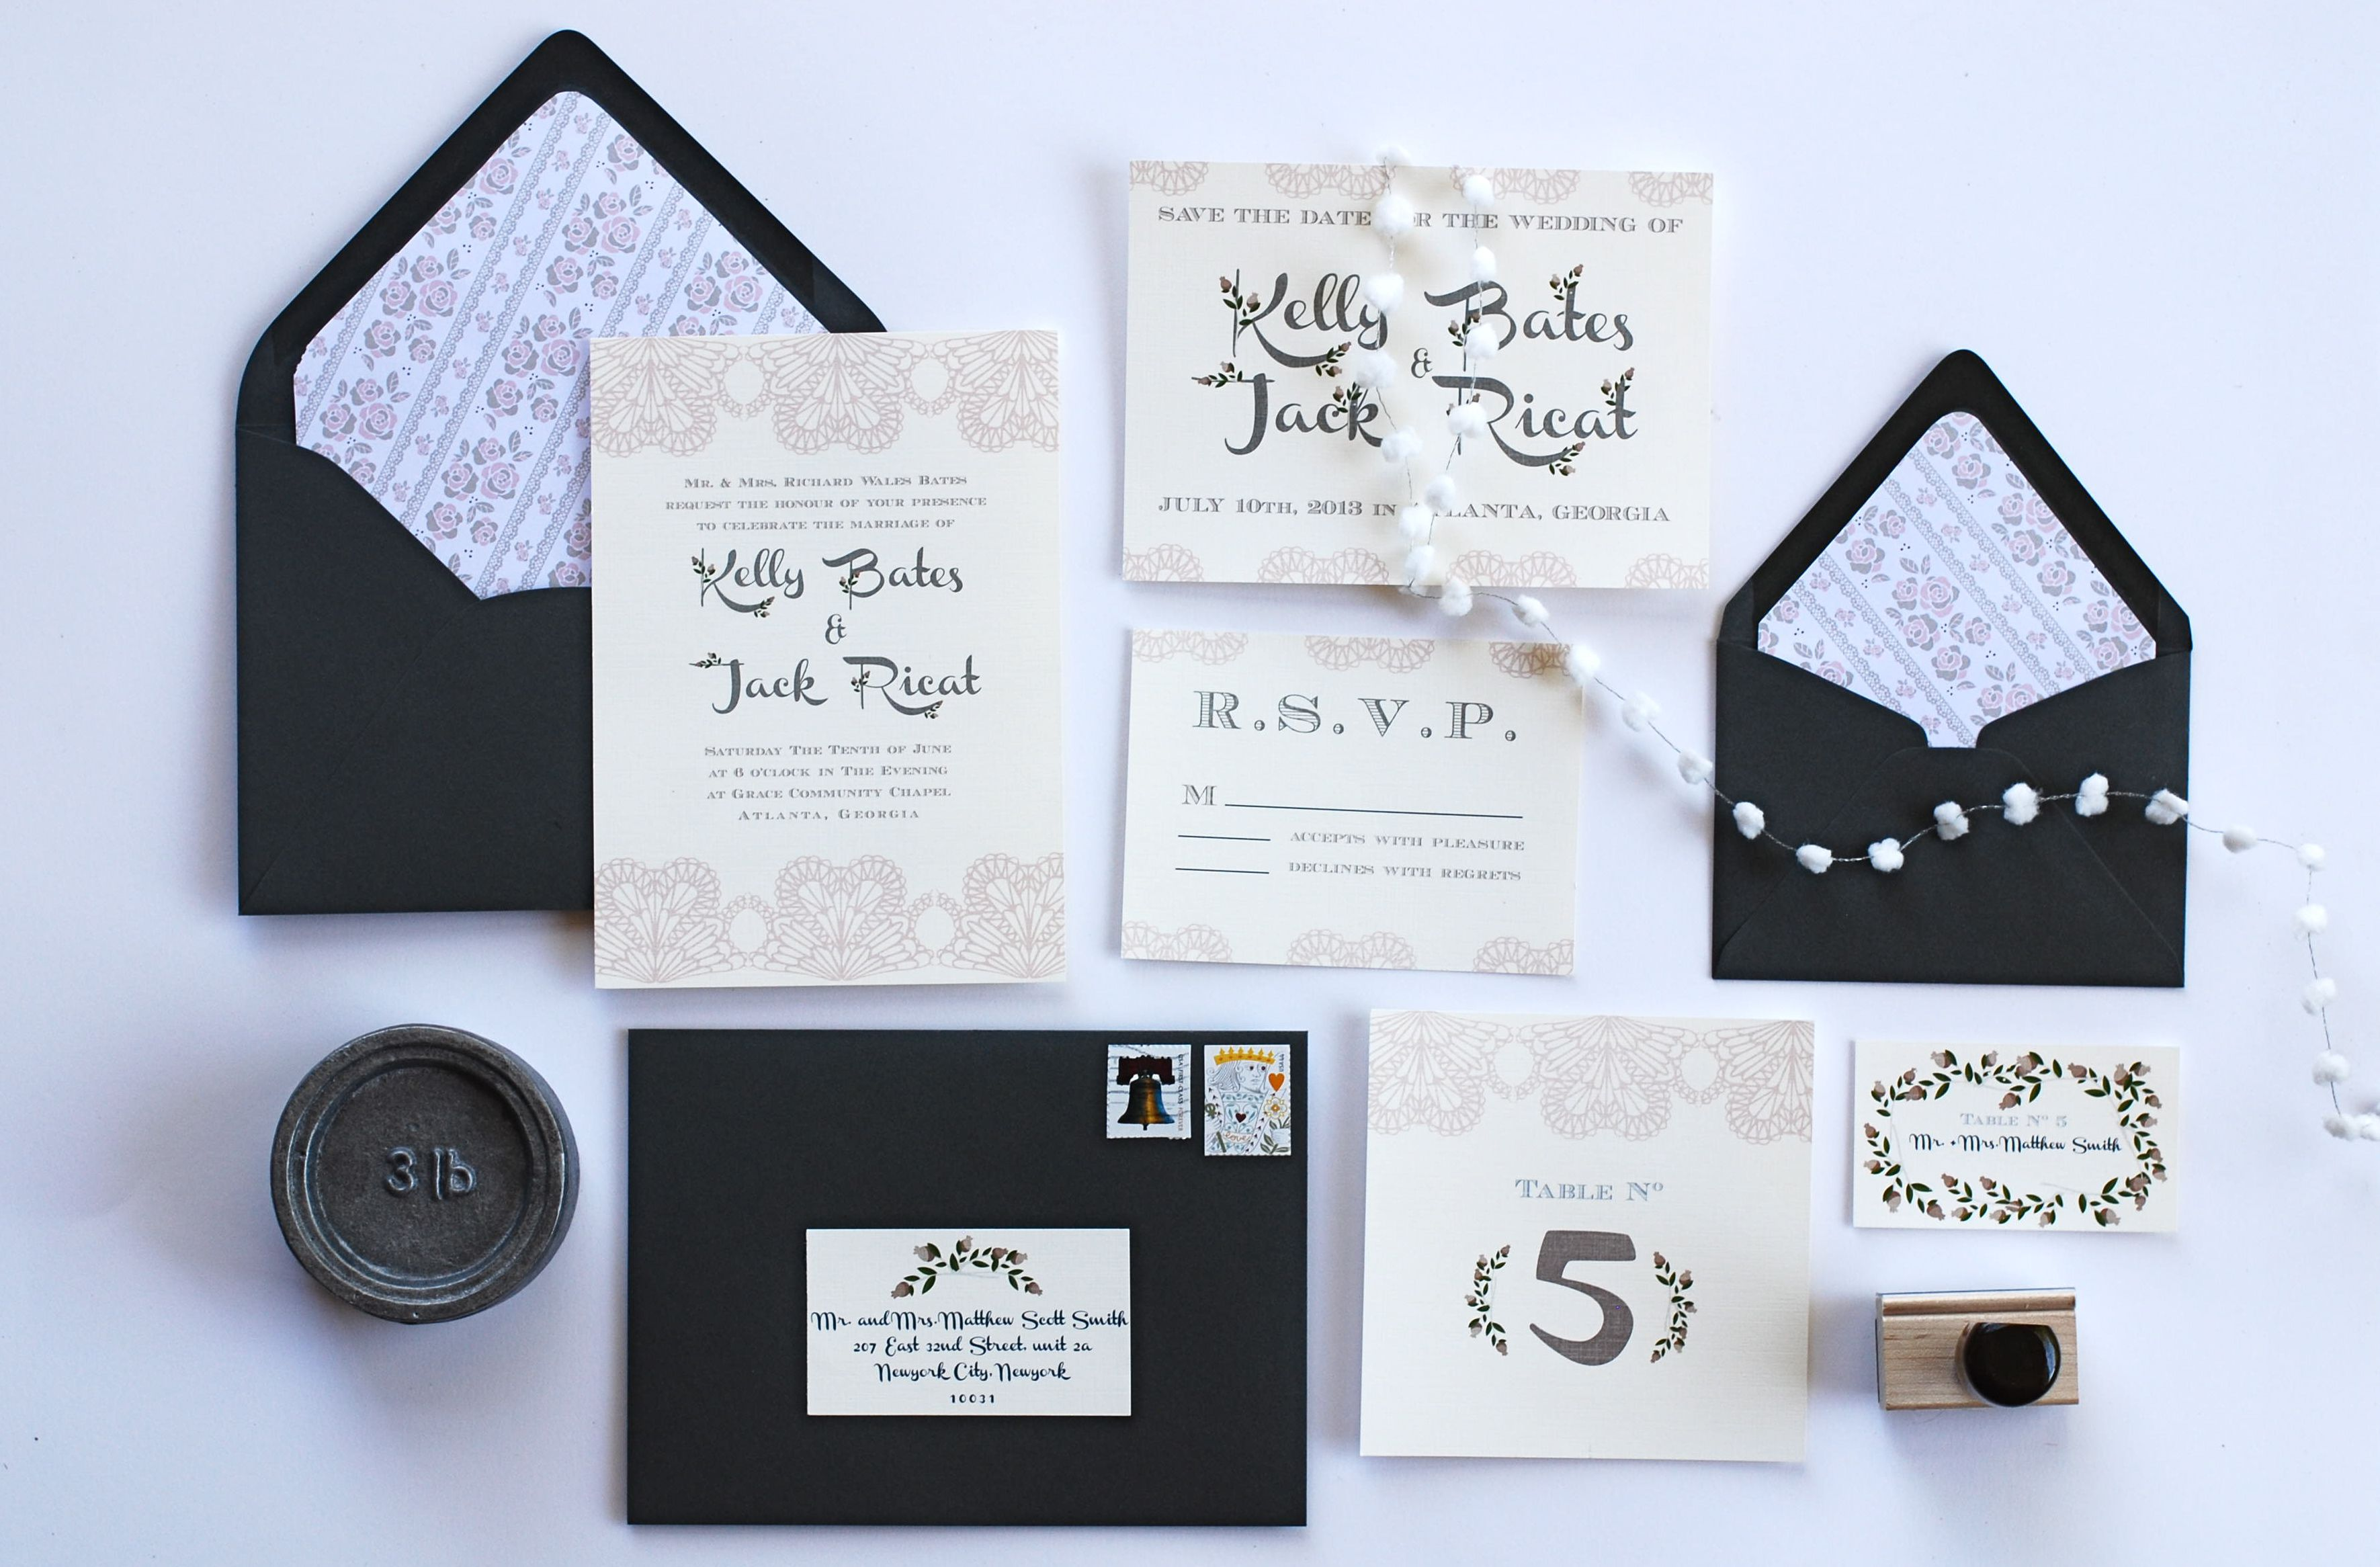 Invitation For A Vintage Style Wedding - Rustic Wedding Chic